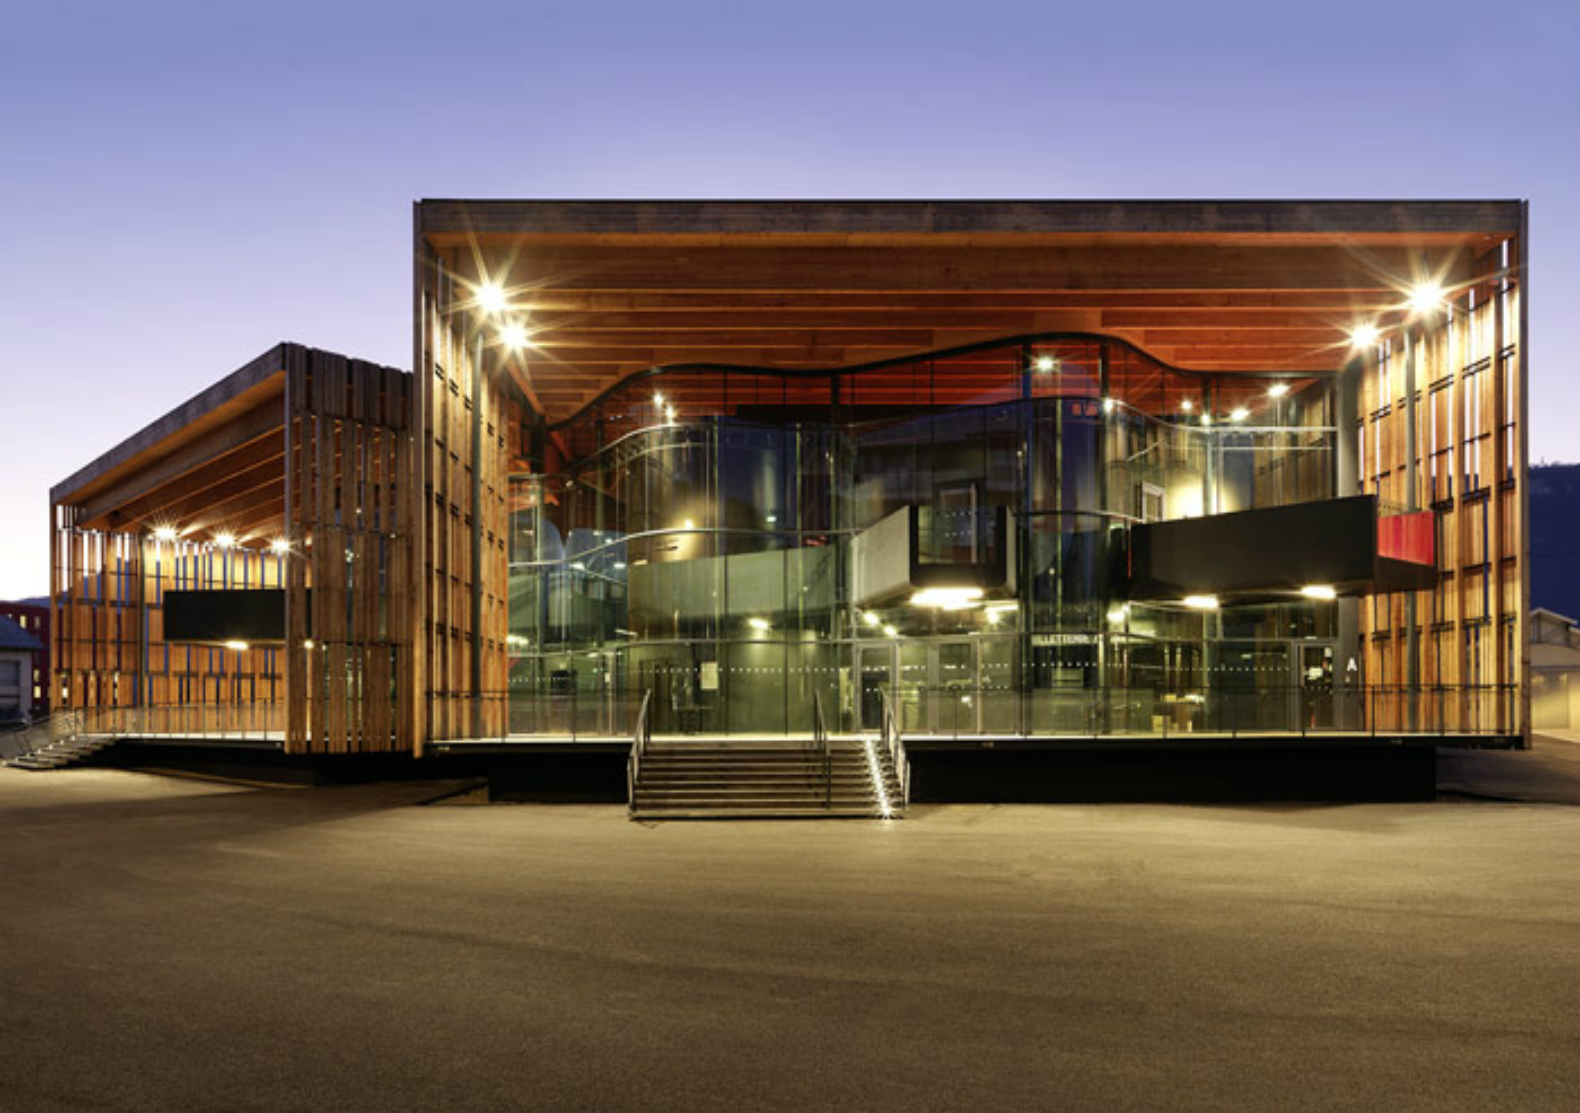 'La Belle Electrique' is a timber-clad concert hall built specifically for  electronic music